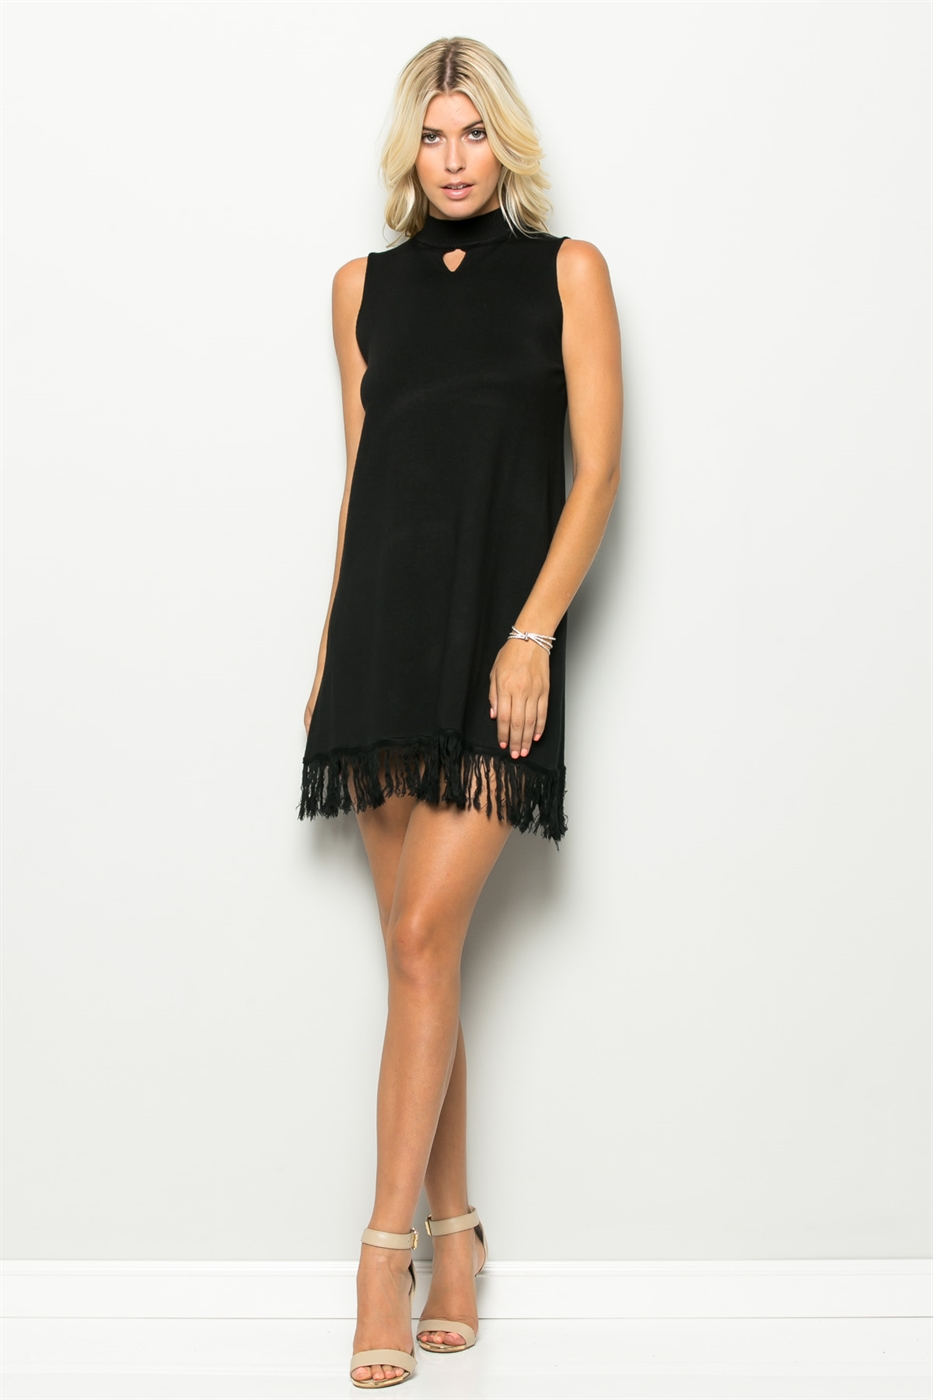 FRINGE BOTTOM KNIT DRESS - orangeshine.com